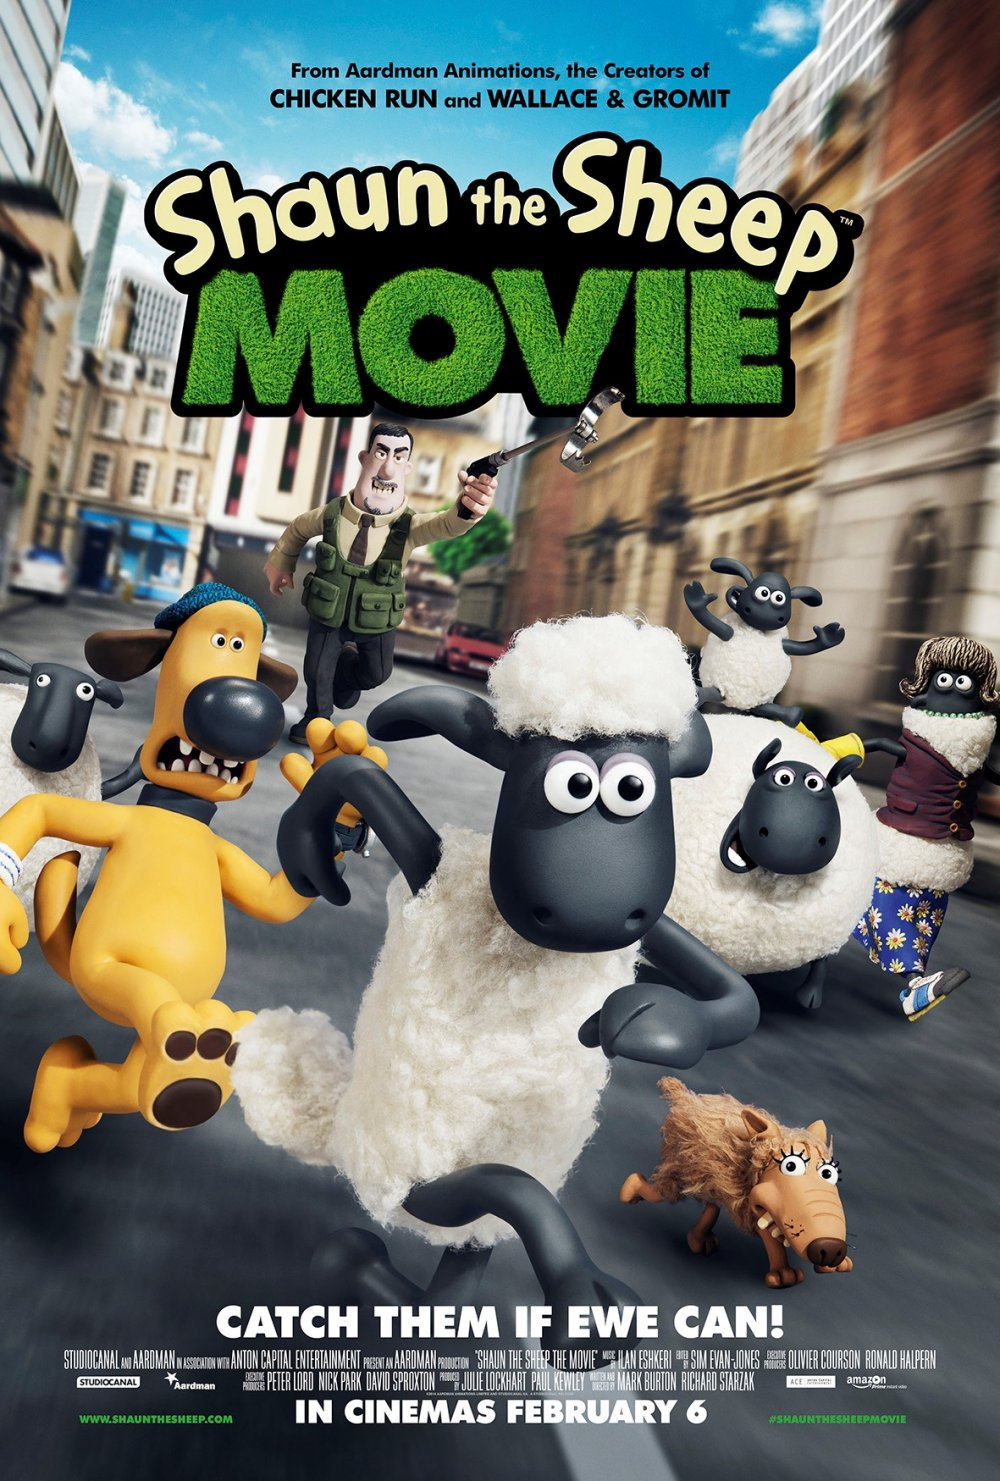 Shaun The Sheep – Chase poster one sheet